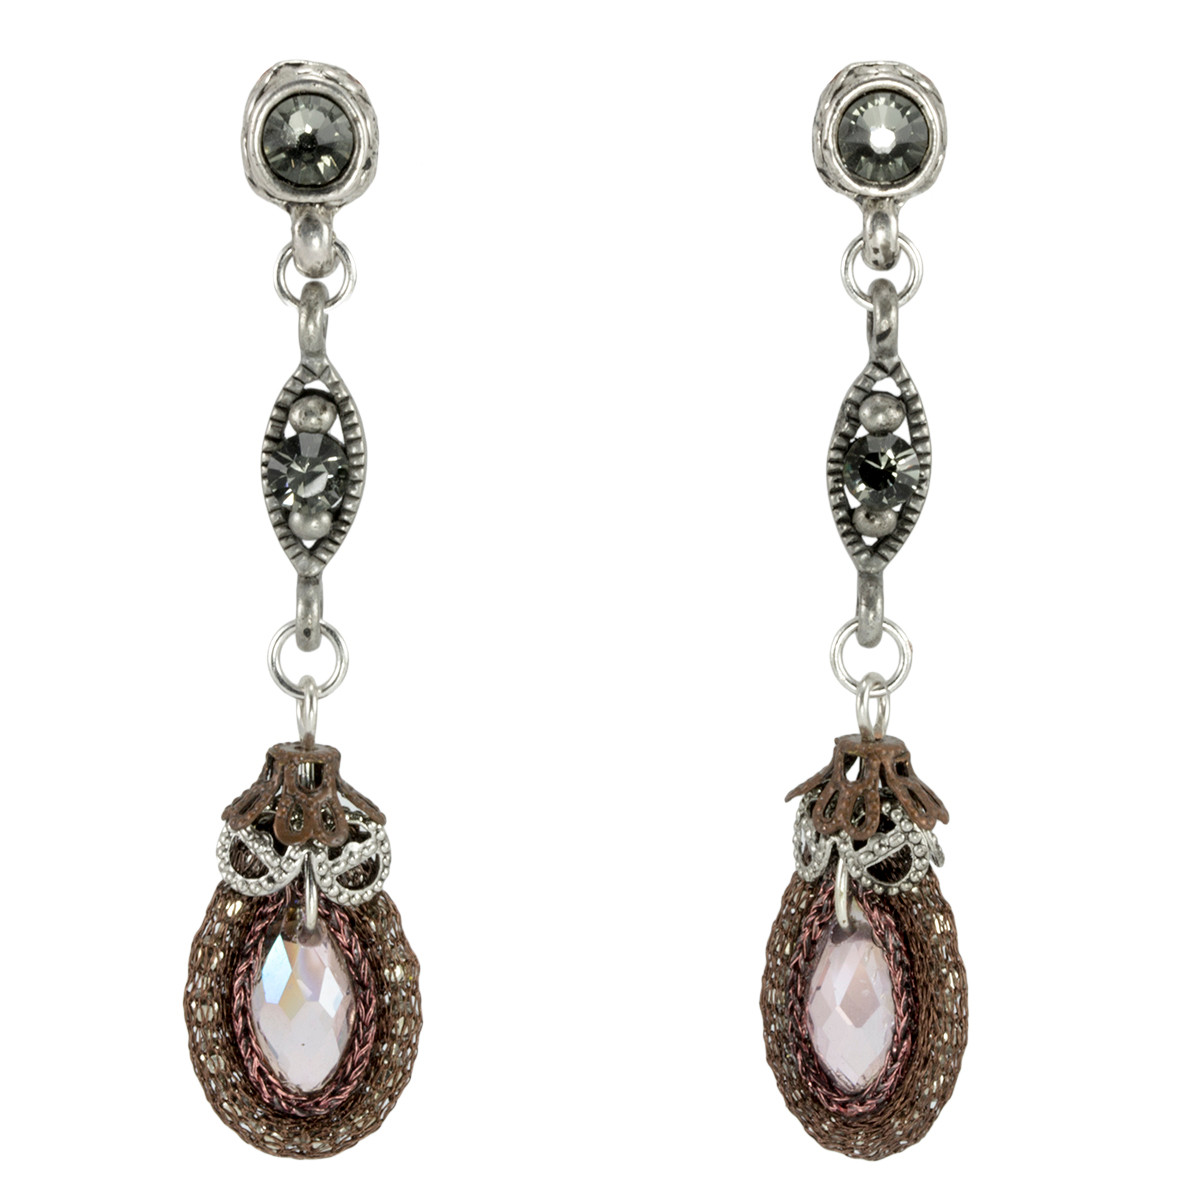 Anat Jewelry Bell of the Ball Nouveau Glam Earrings